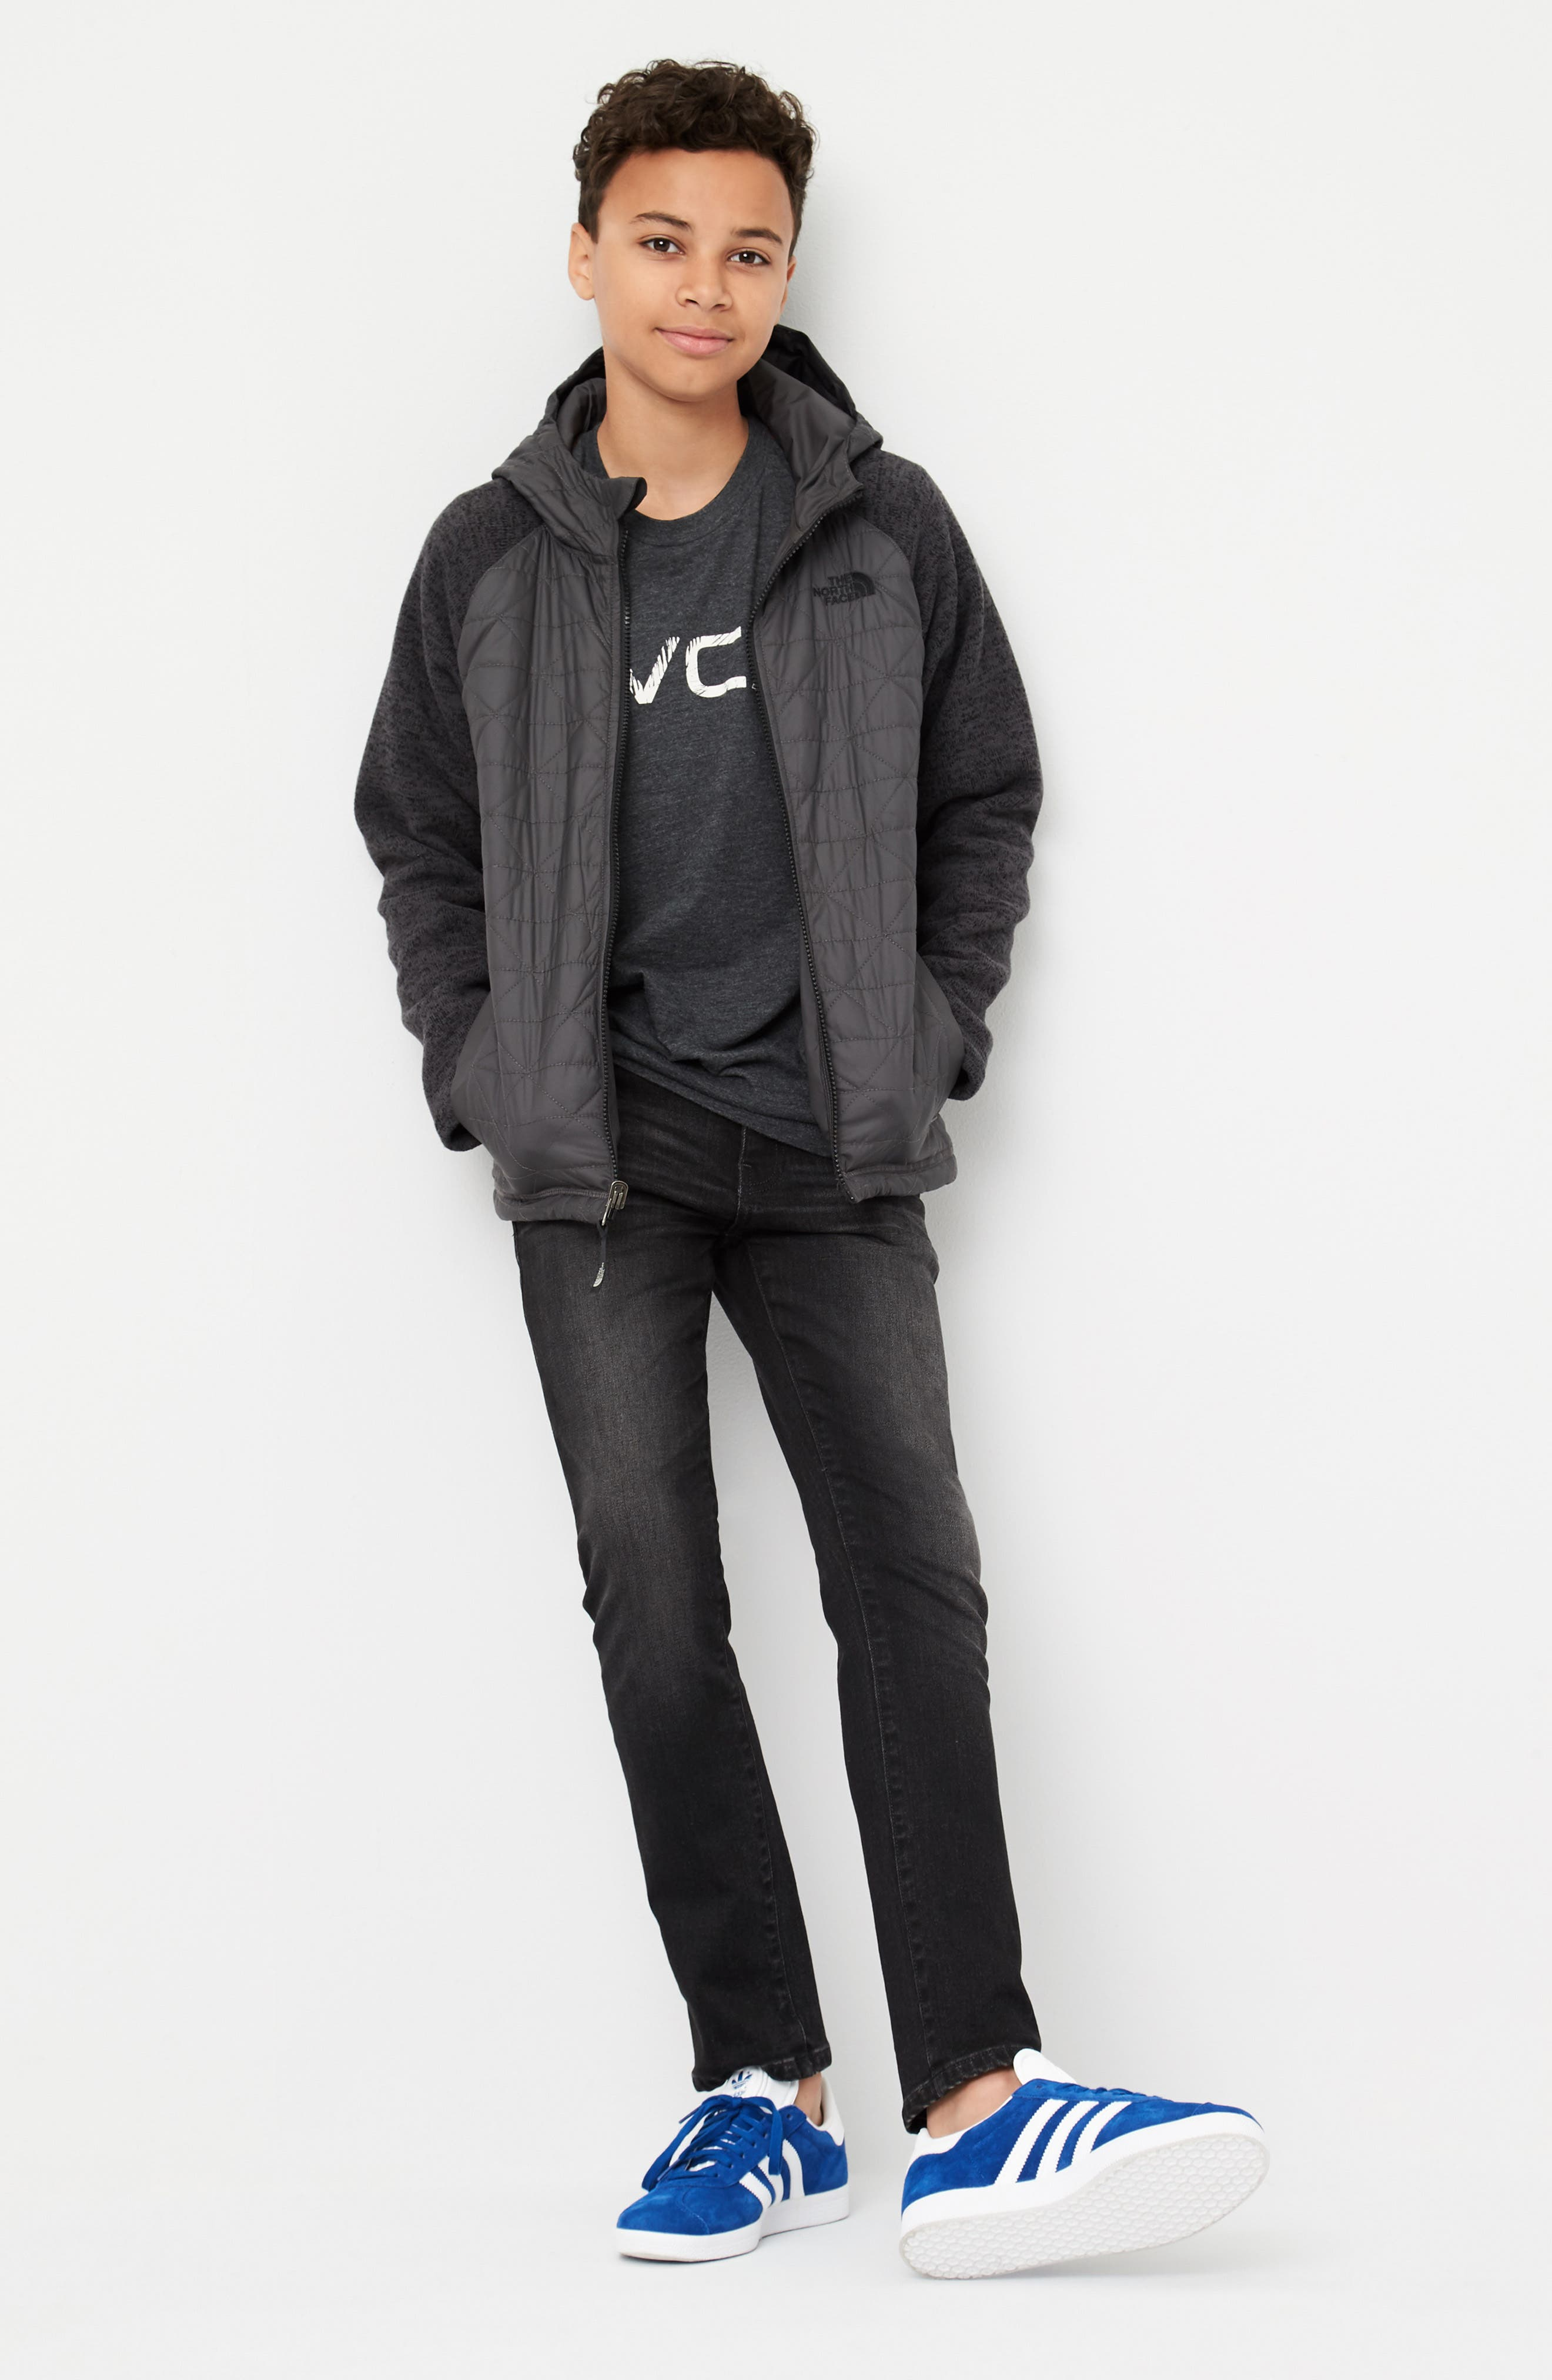 The North Face Hoodie, RVCA T-Shirt & DL1961 Jeans Outfit with Accessories (Big Boys)